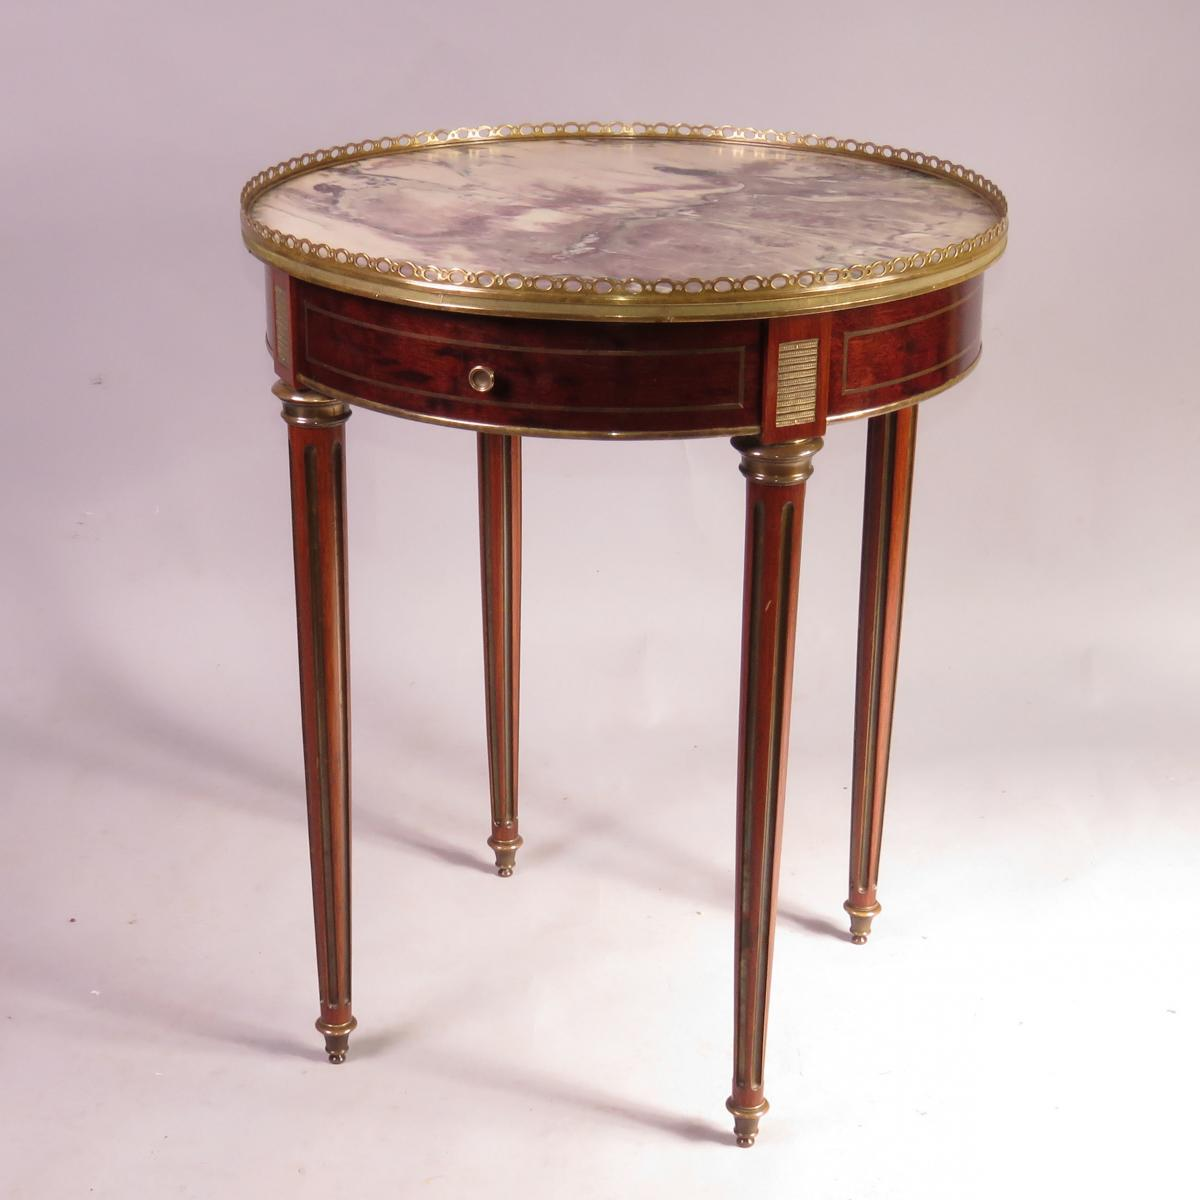 Late 19th Century Marble Topped Bouilotte Table